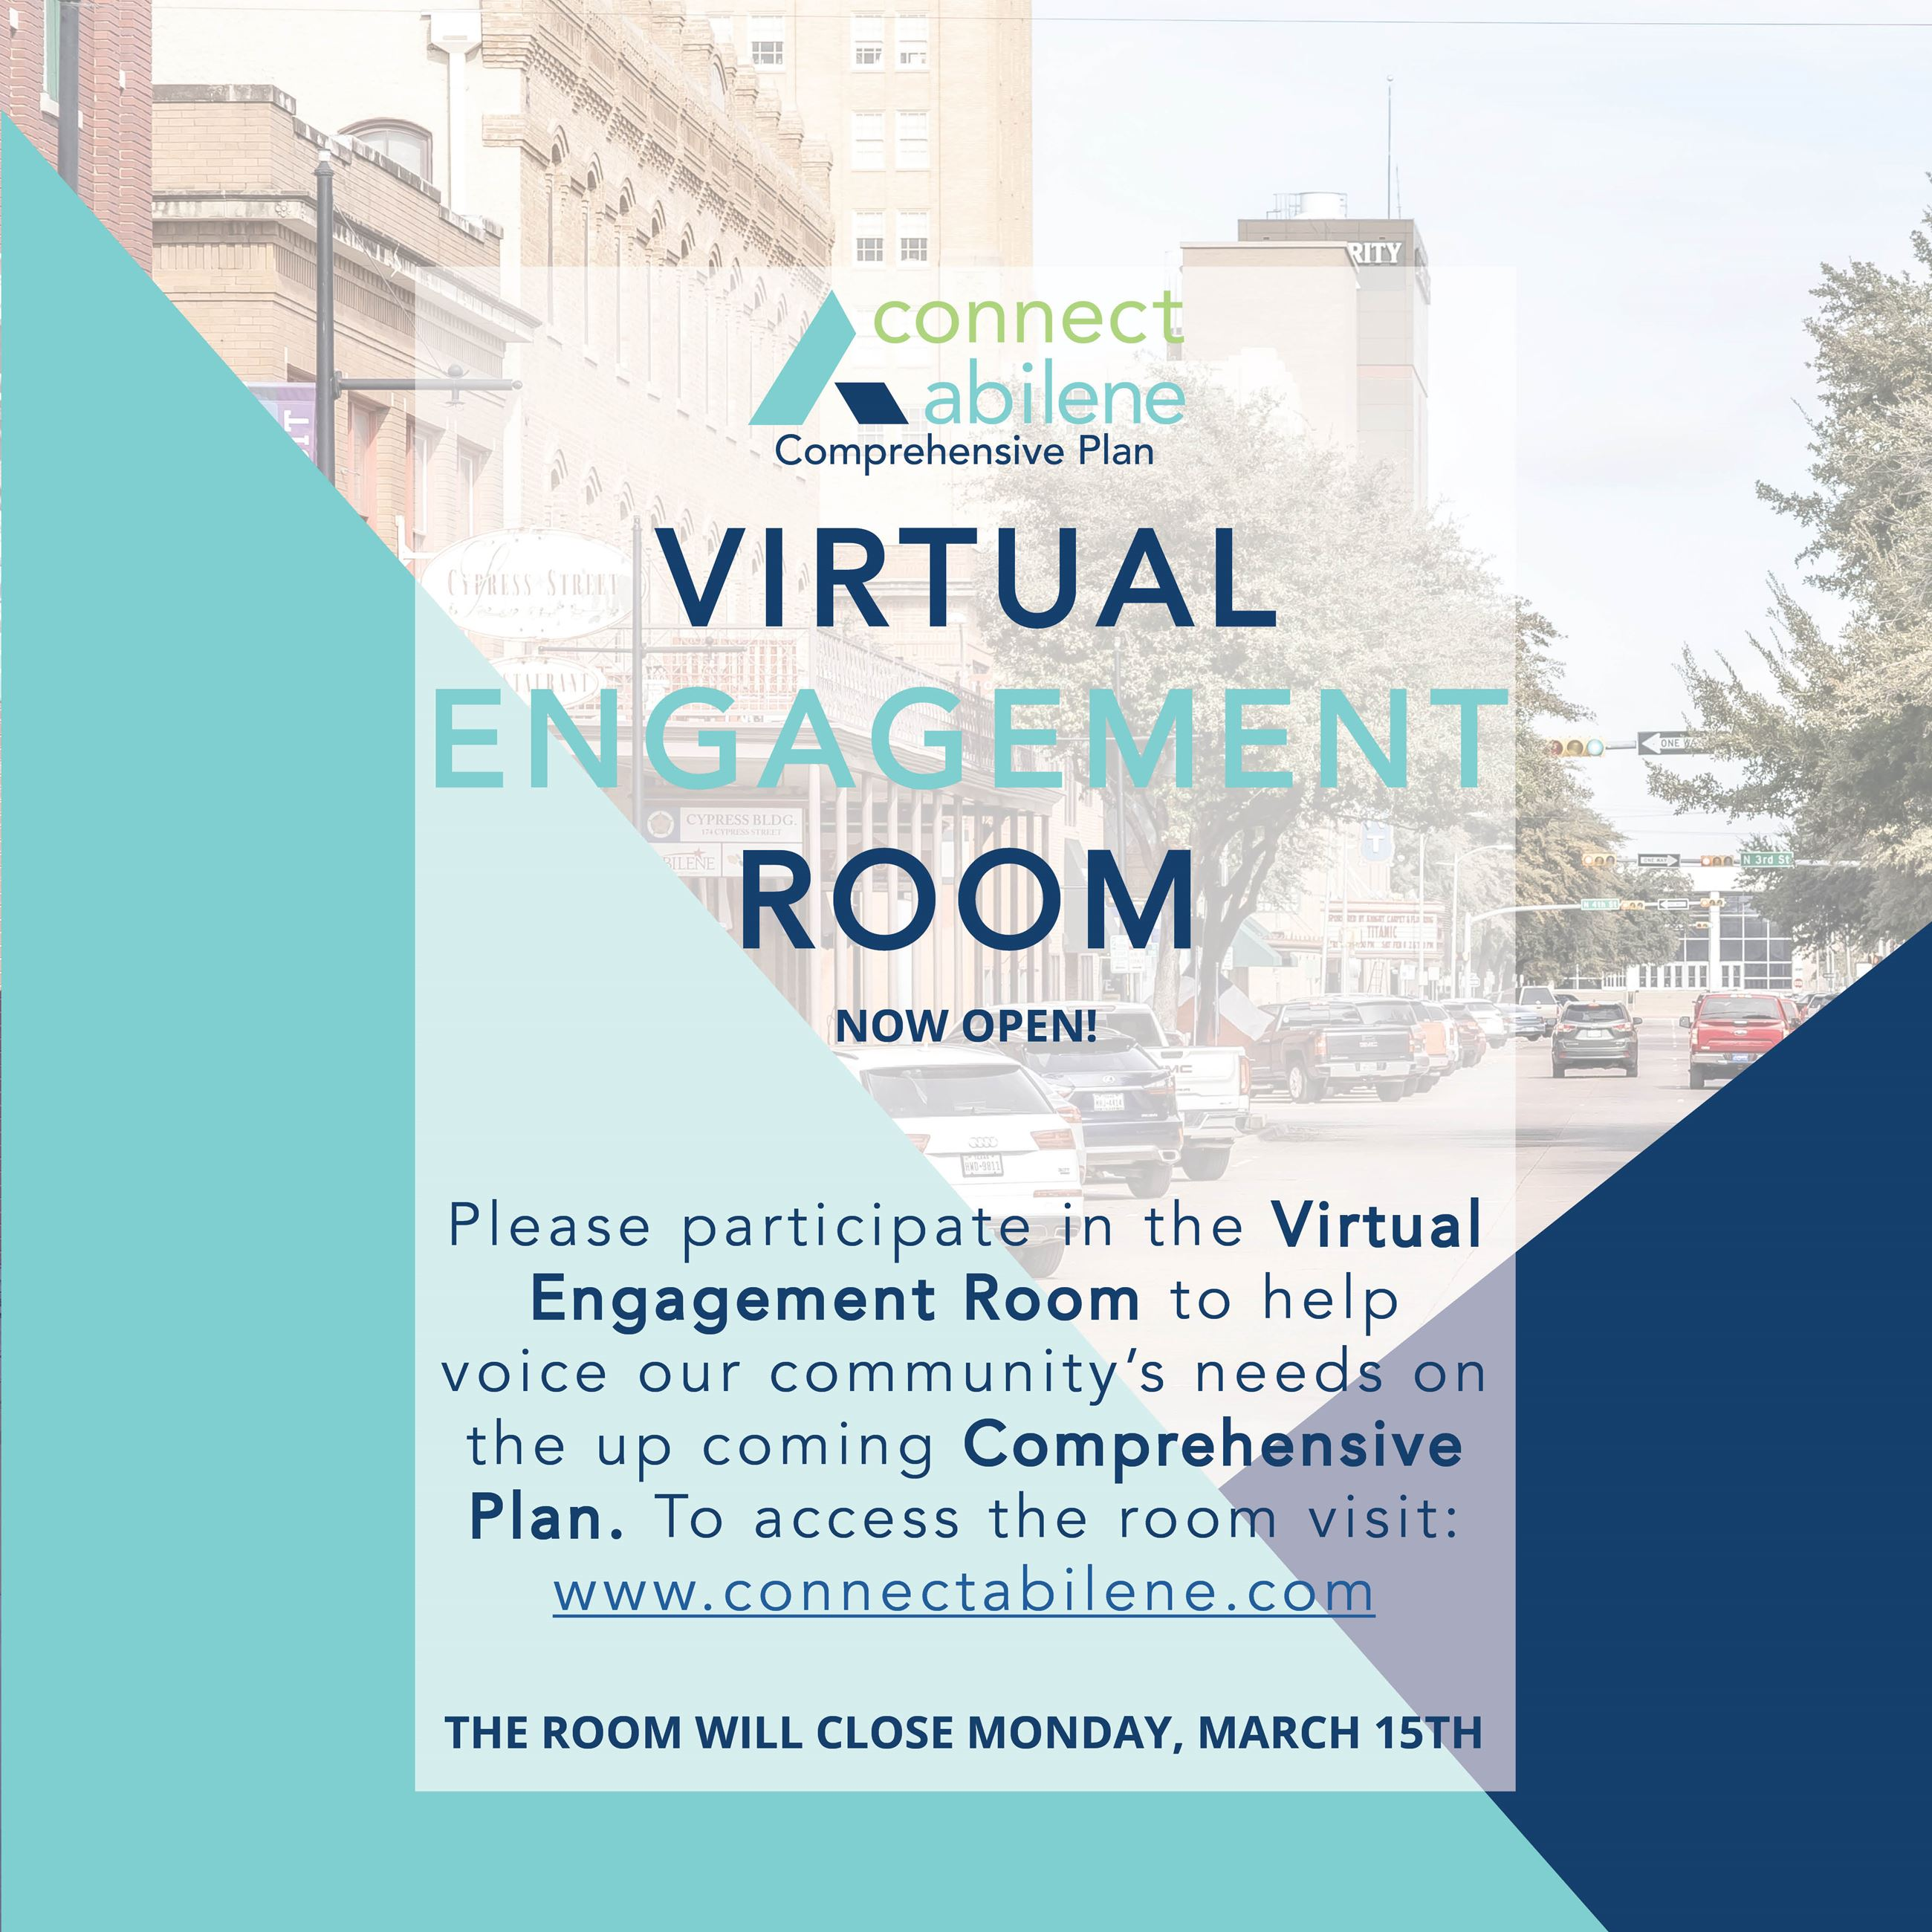 Virtual Engagement Room Open Through Monday March 15th